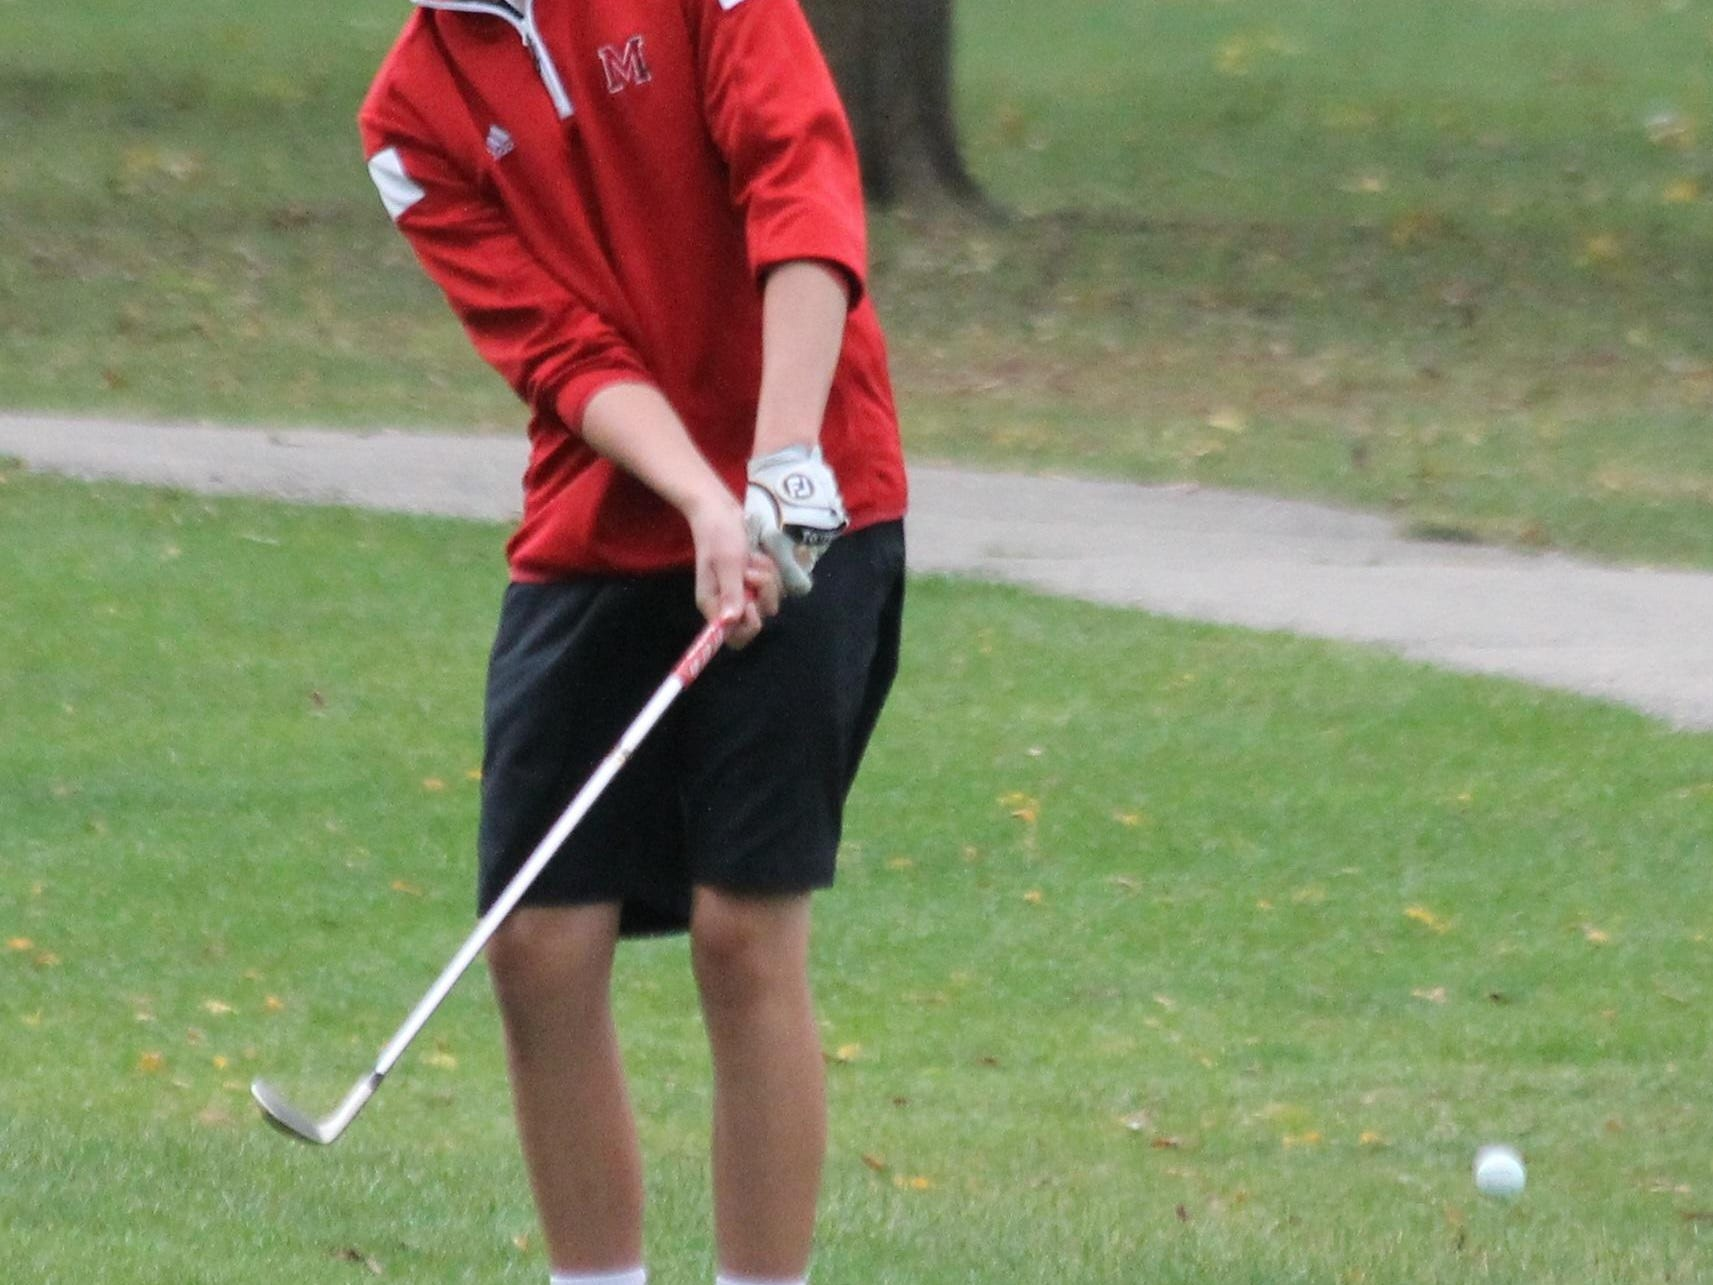 Junior Nathan Arnold watches his chip shot. He finished the round with a 76.